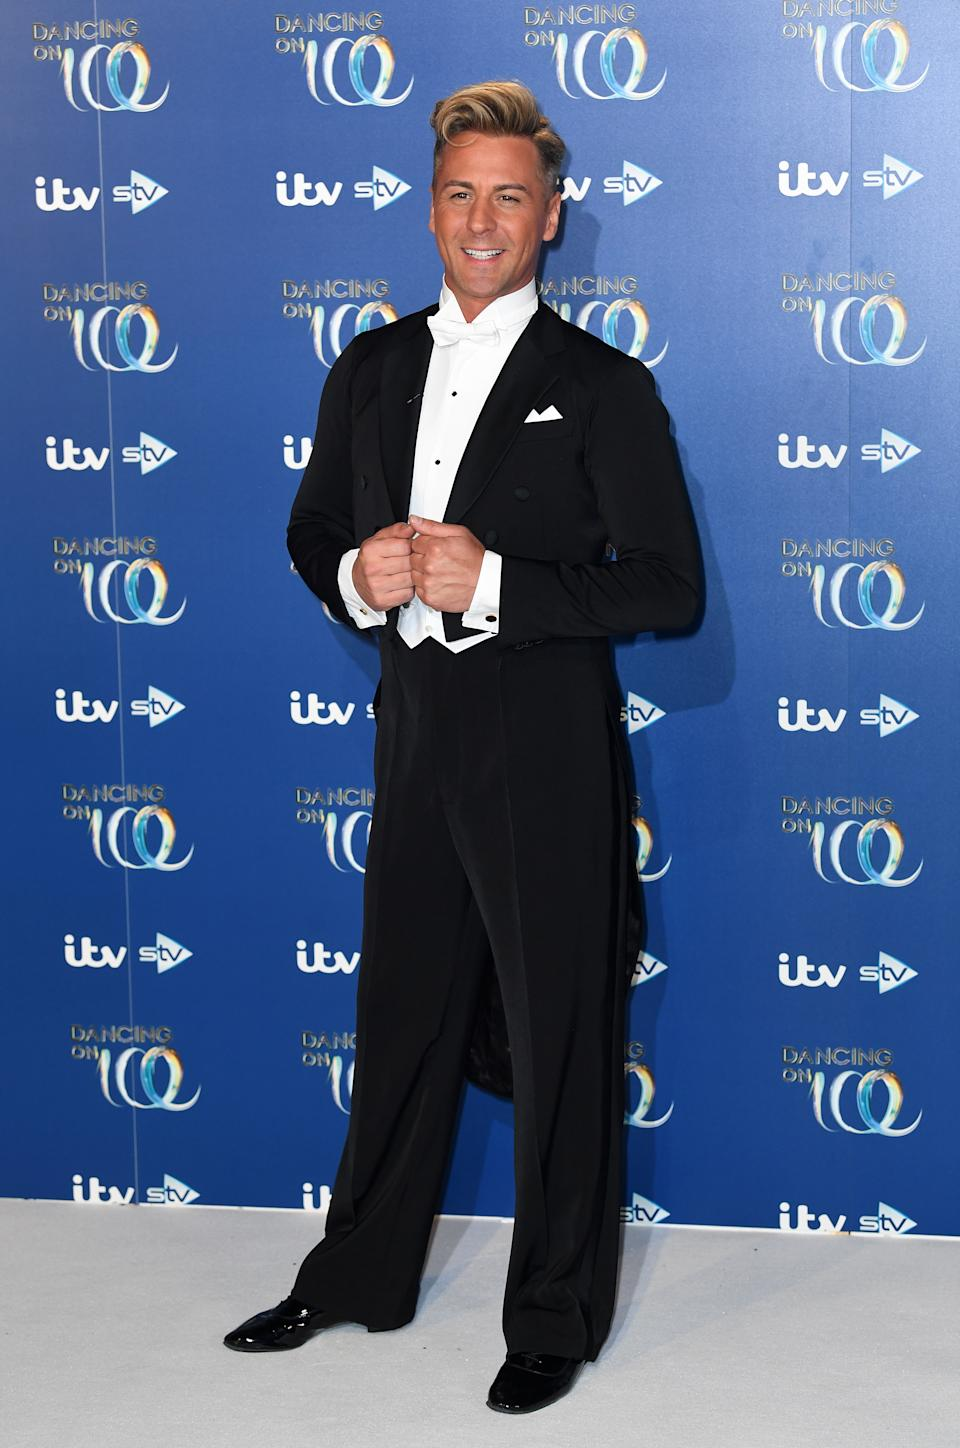 Matt Evers attending the Dancing on Ice 2020 launch held at Bovingdon Airfield, Hertfordshire. Photo credit should read: Doug Peters/EMPICS